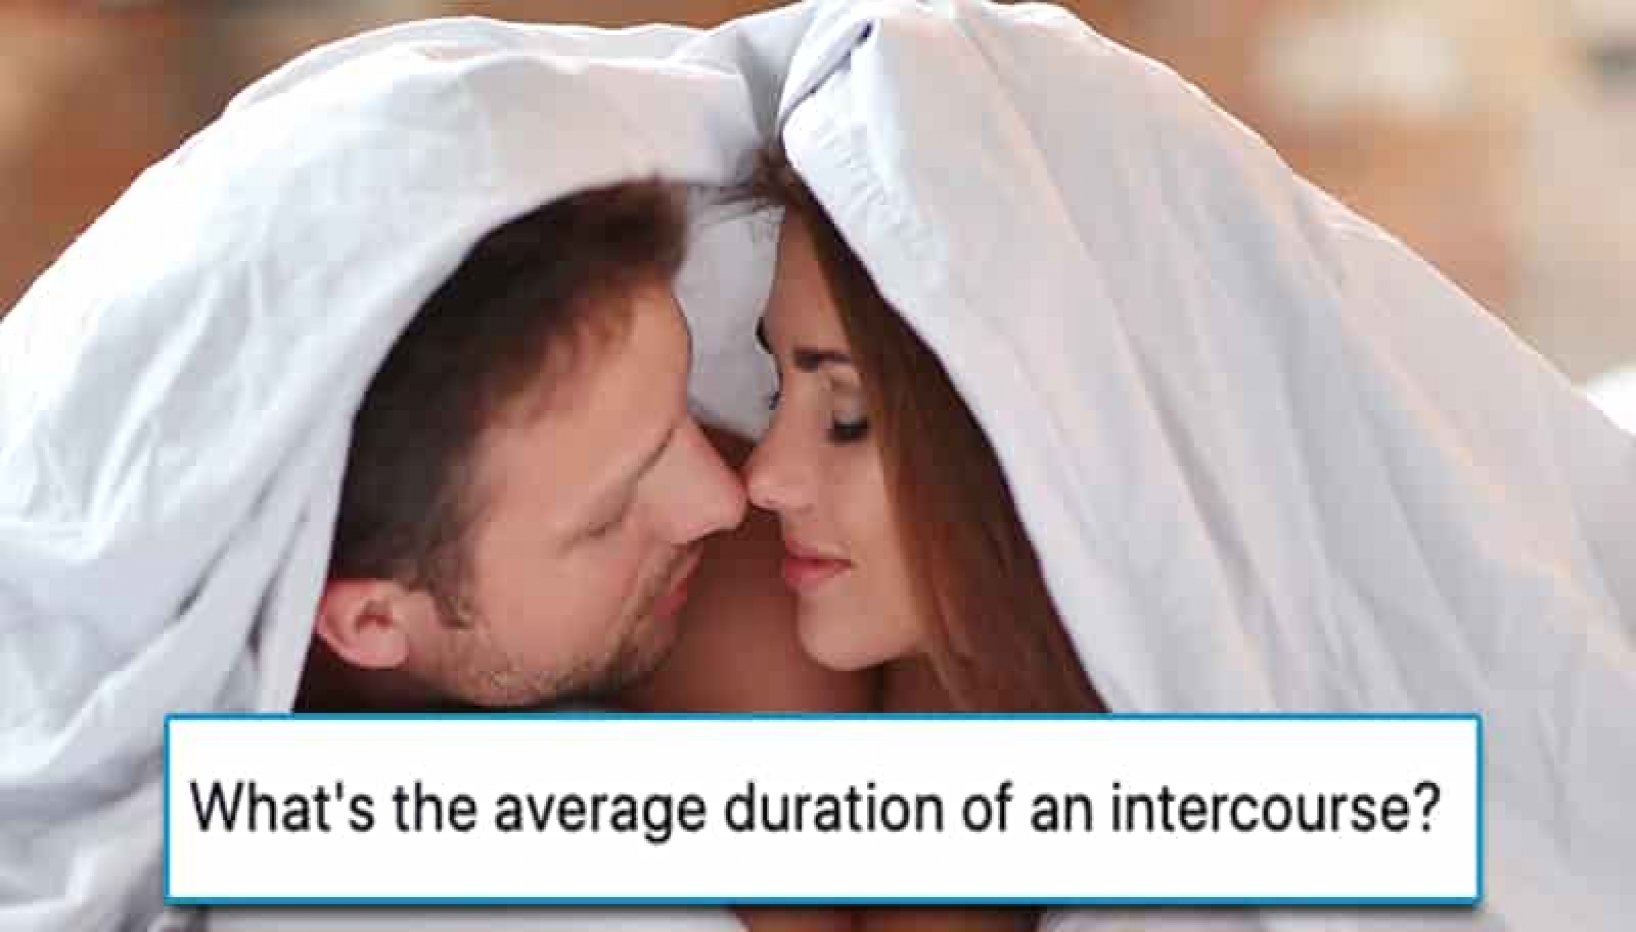 How Long Should An Intercourse Last? Here's What A Doctor Has To Say!